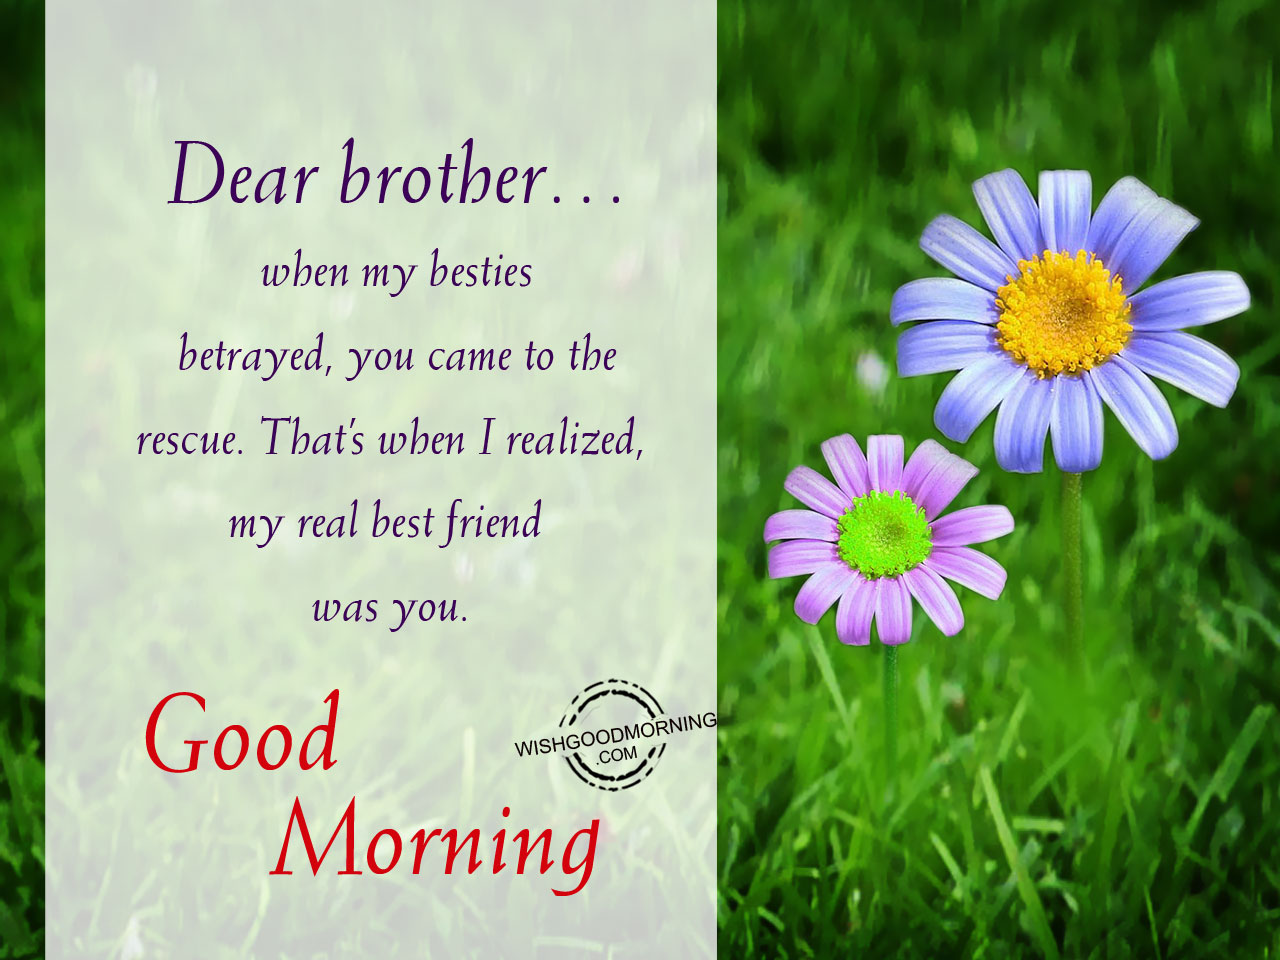 Good Morning Brother : Good morning wishes quotes with sweet images for your best